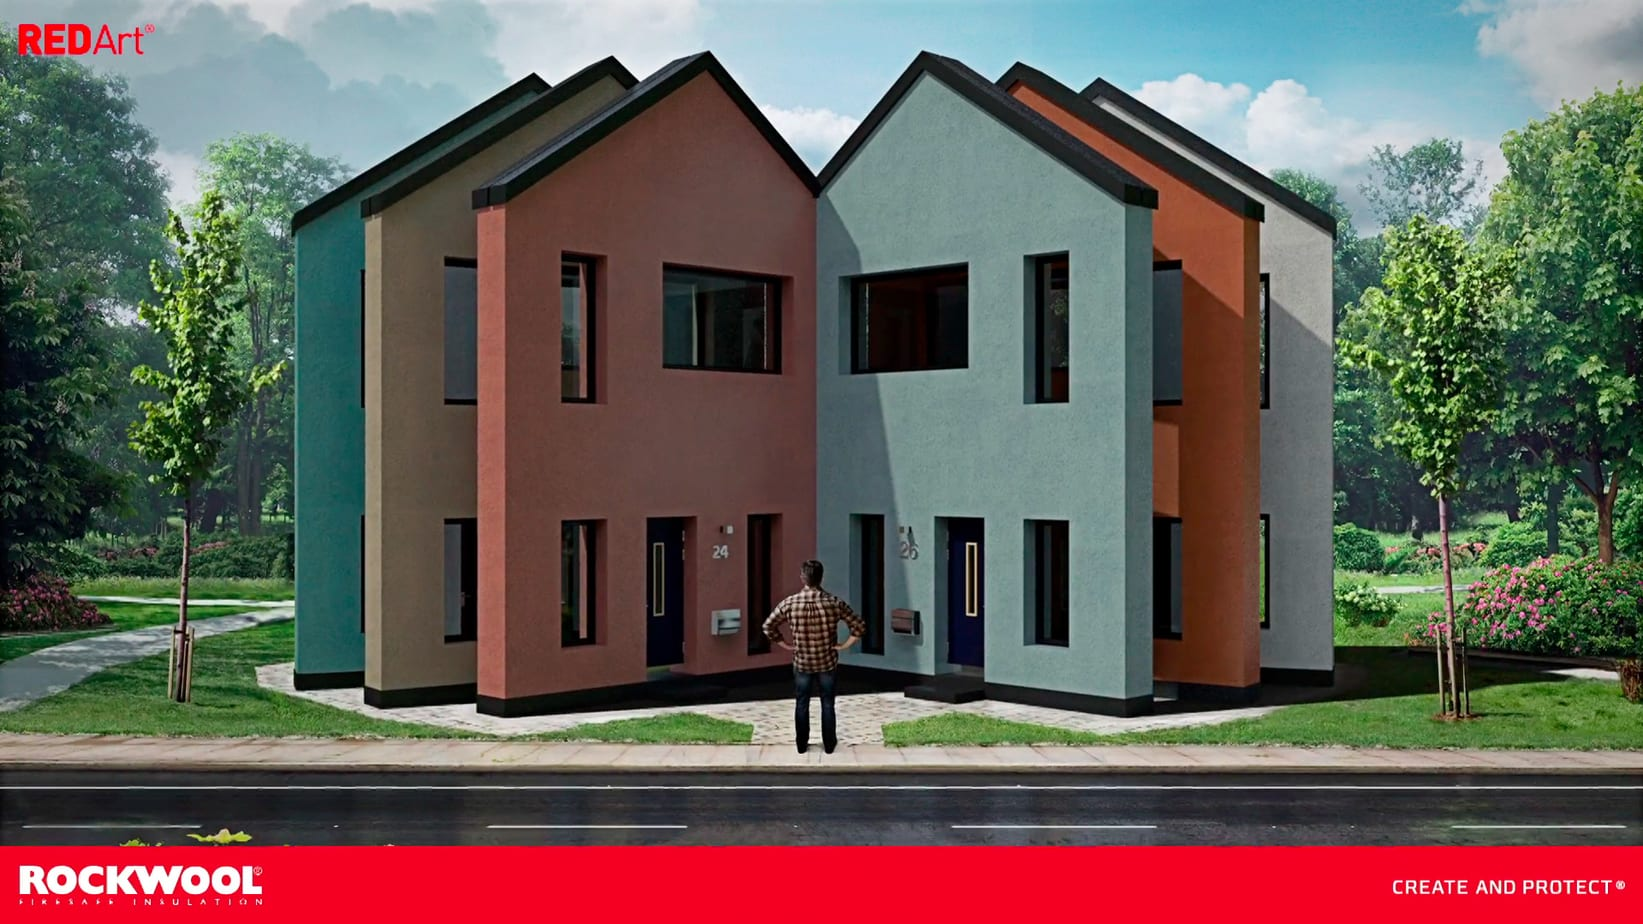 The Color Club - Rockwool Red Art